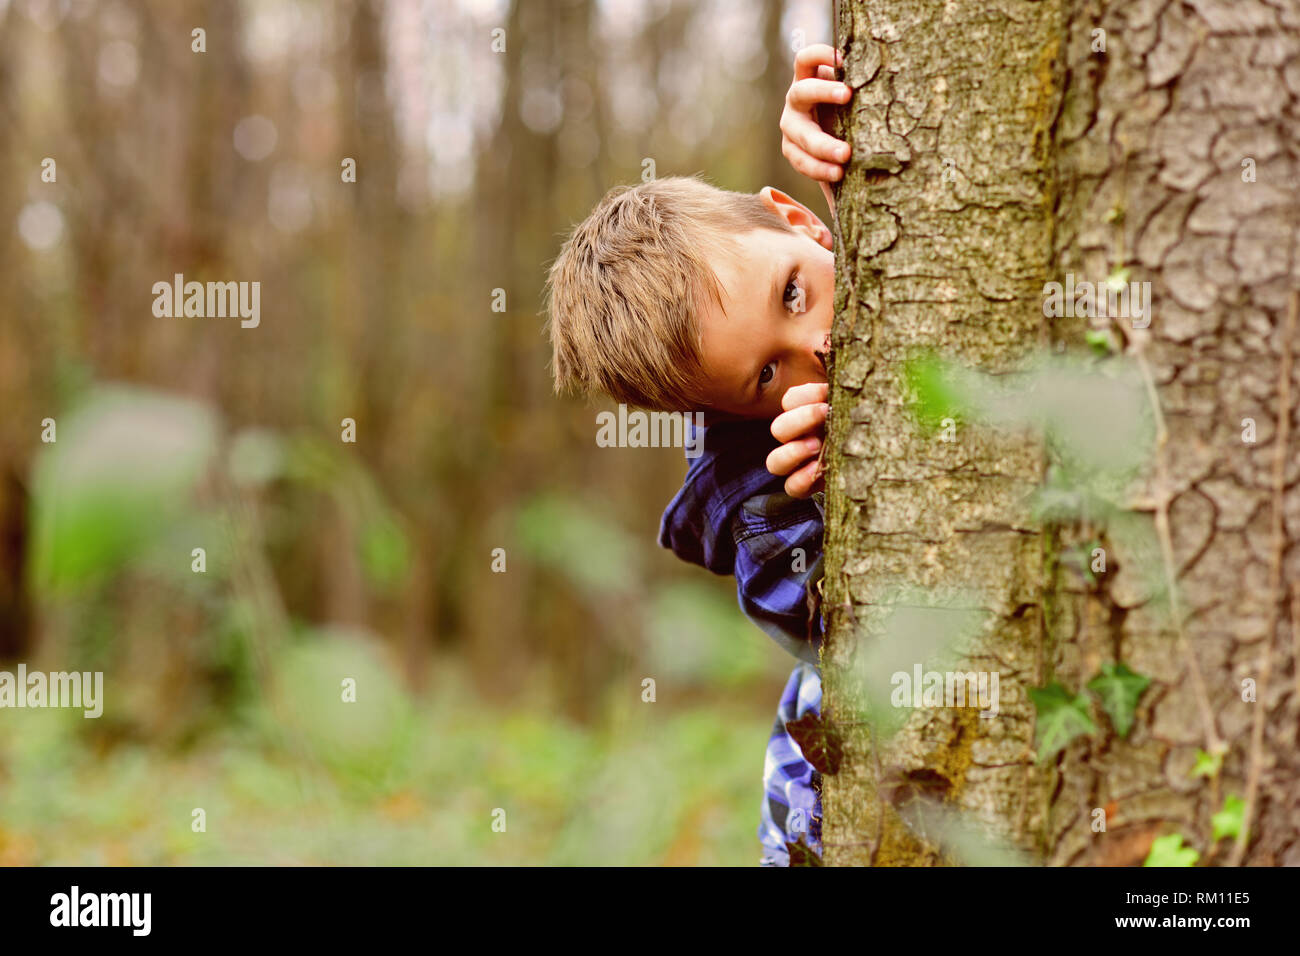 Spying is exciting. Small spy. Small child hide behind tree in forest. Small boy play guessing game. I spy with my little eye - Stock Image